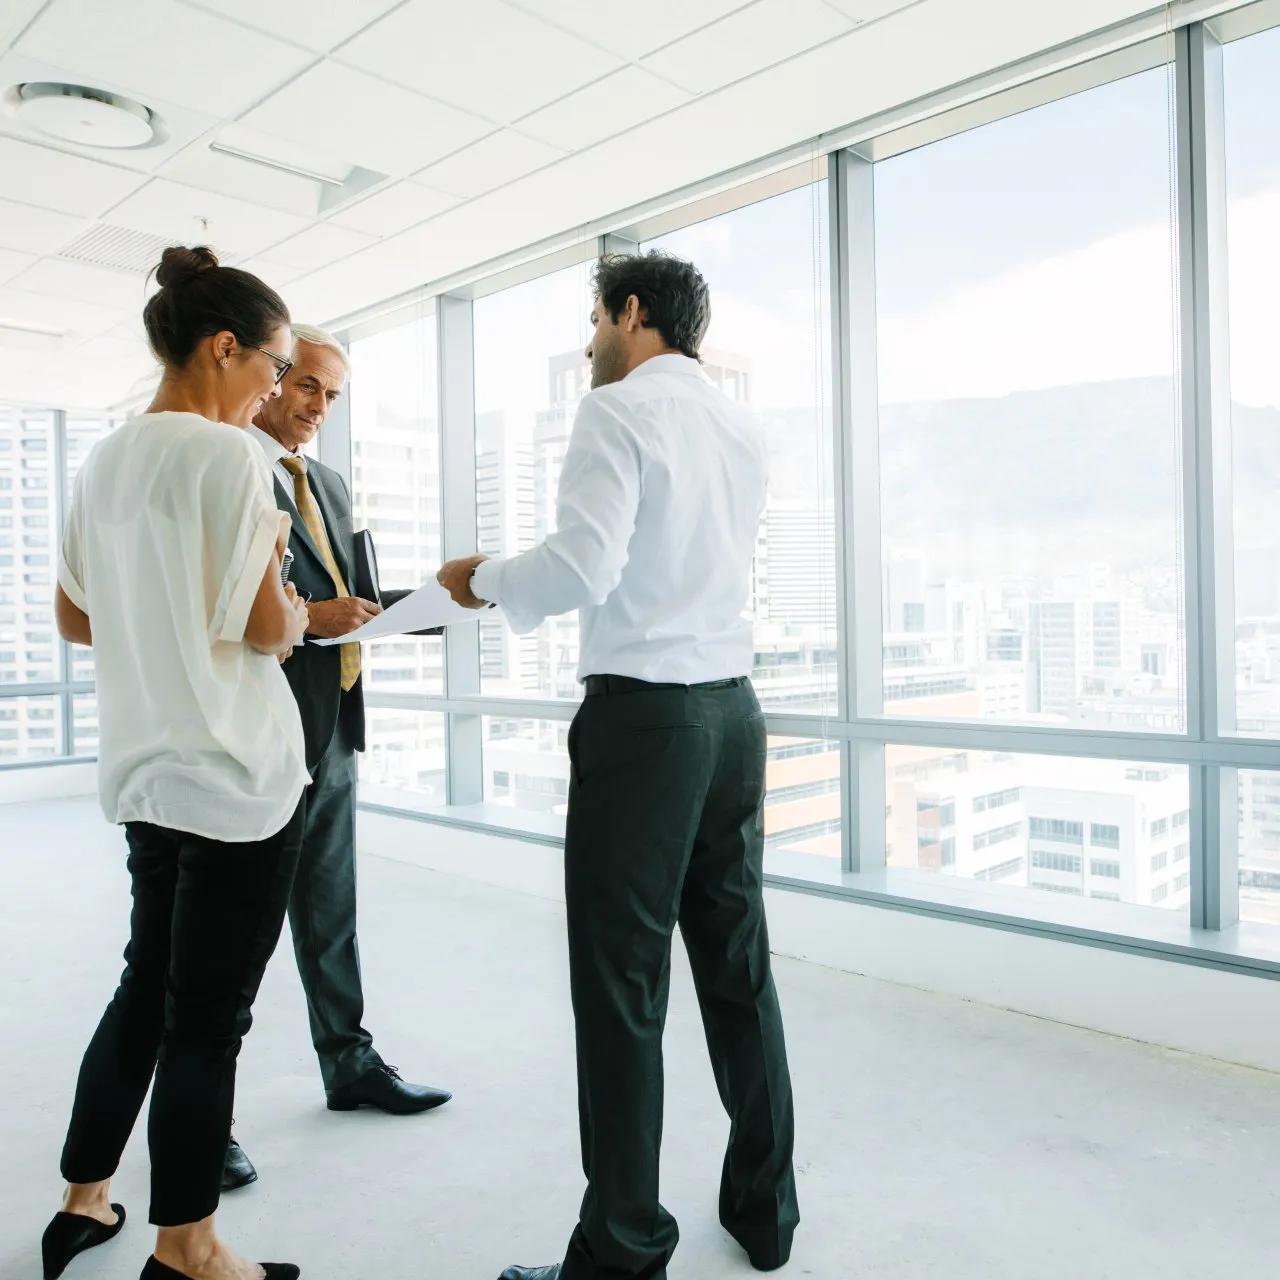 Top CRE sales tips from the experts